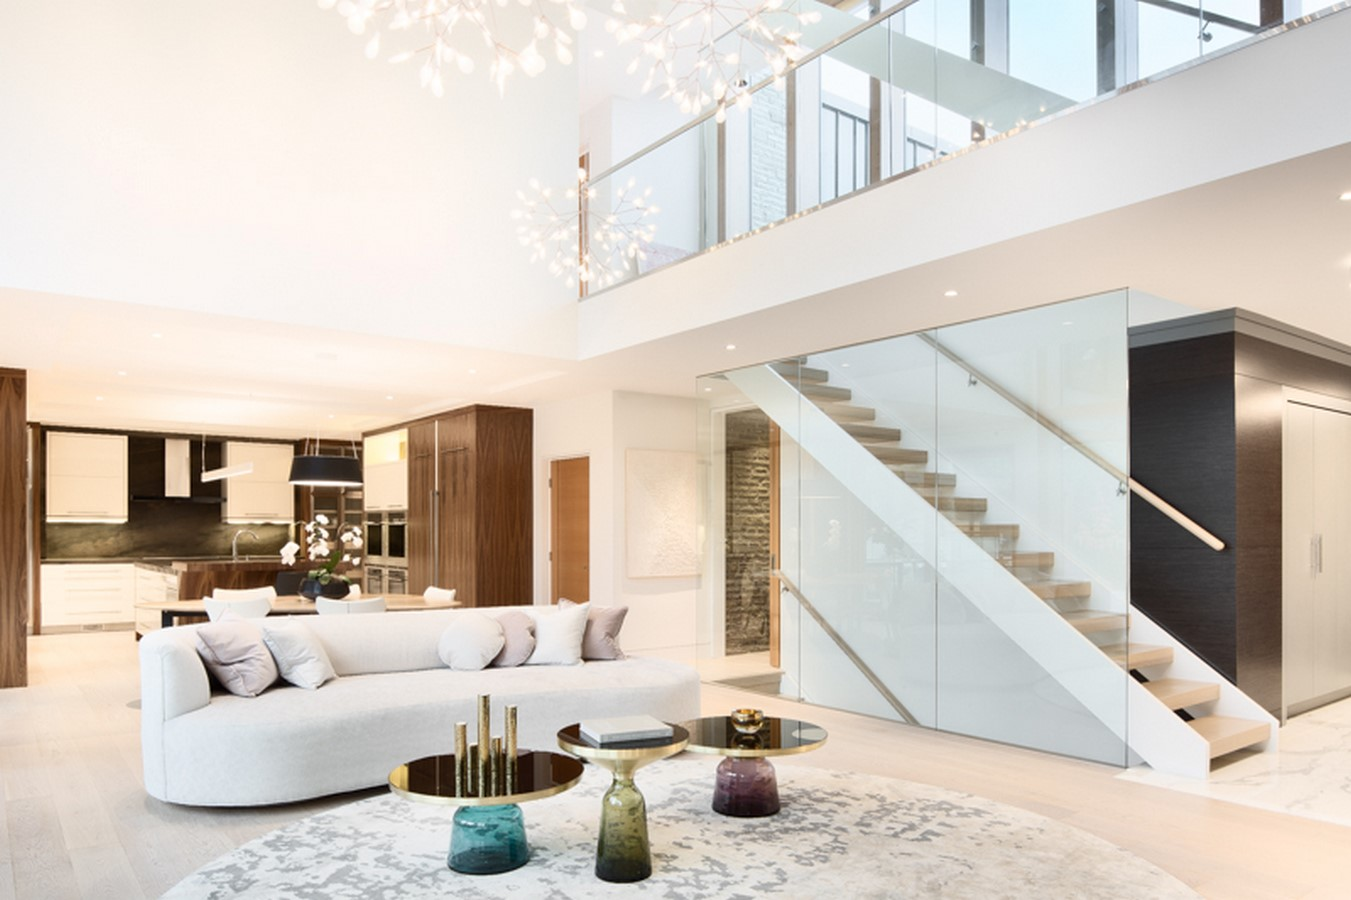 Don Mills Ravine Home by Altius Architecture - Sheet1